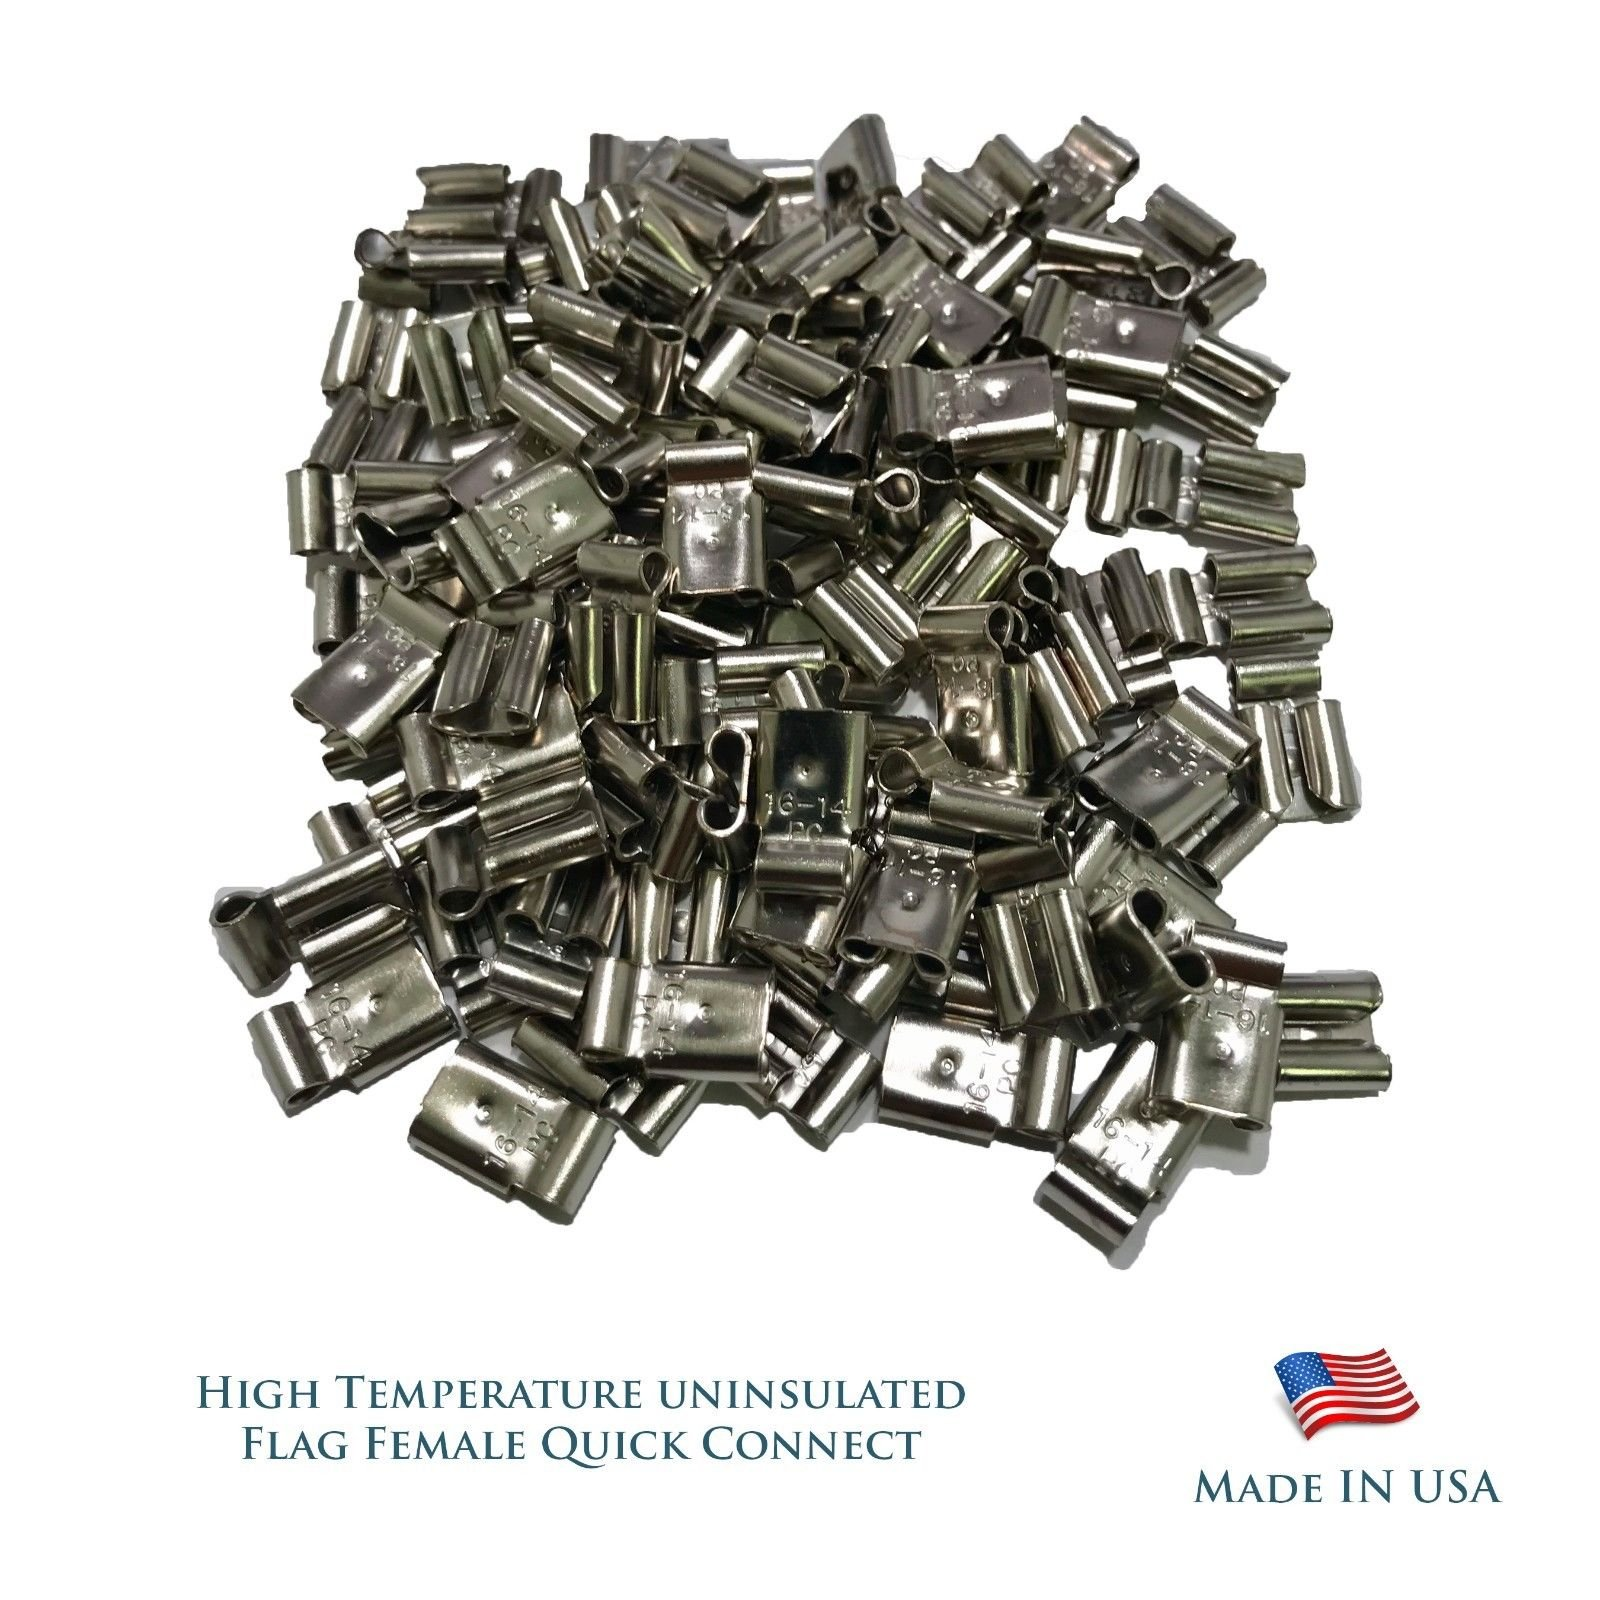 Sherco-Auto High Temperature 100 Pcs Flag Female Quick Connectors 16-14 AWG Gauge.250 FQC - USA Made by Sherco-Auto